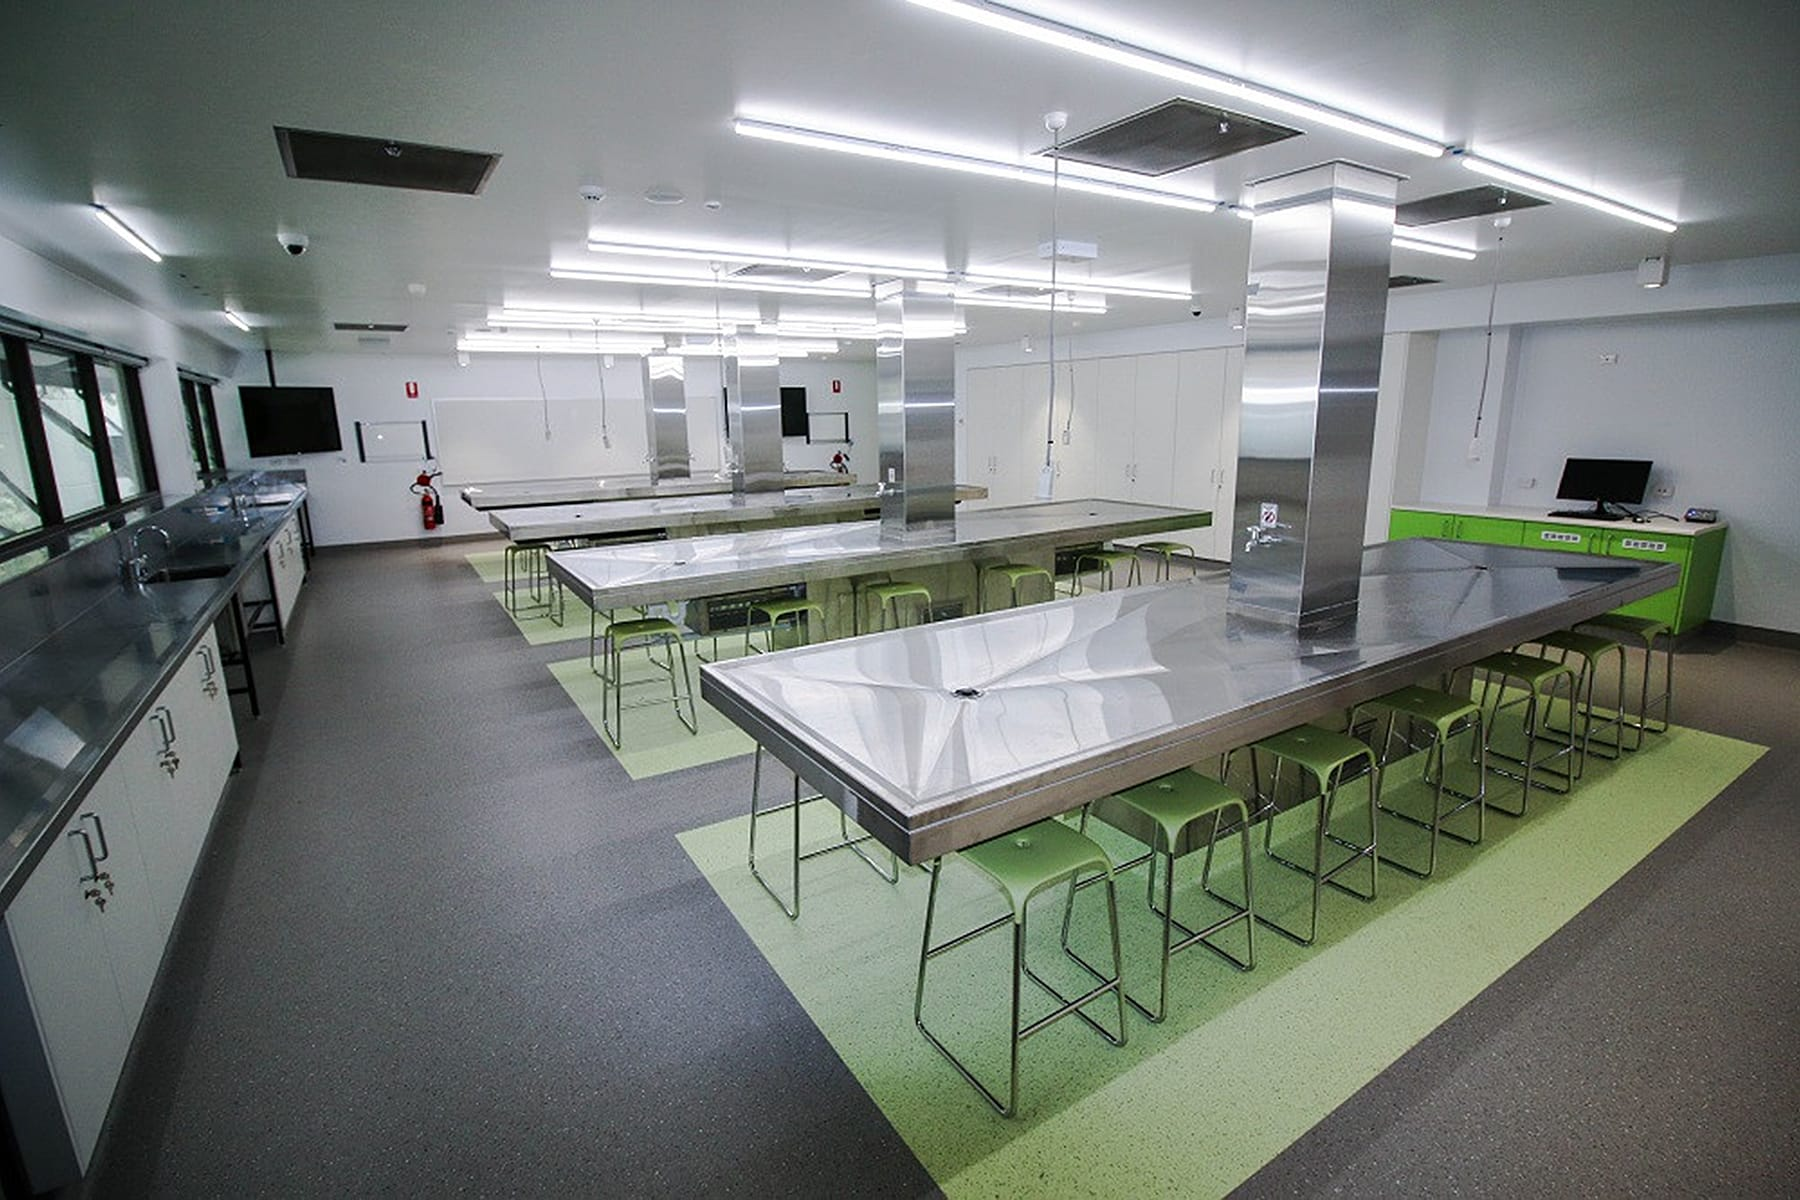 Create It Constructions. Griffith University Anatomy Laboratory – Medical fitout. Health Fitout. Trainging Fitout. Education Fitout. Nathan - Brisbane.